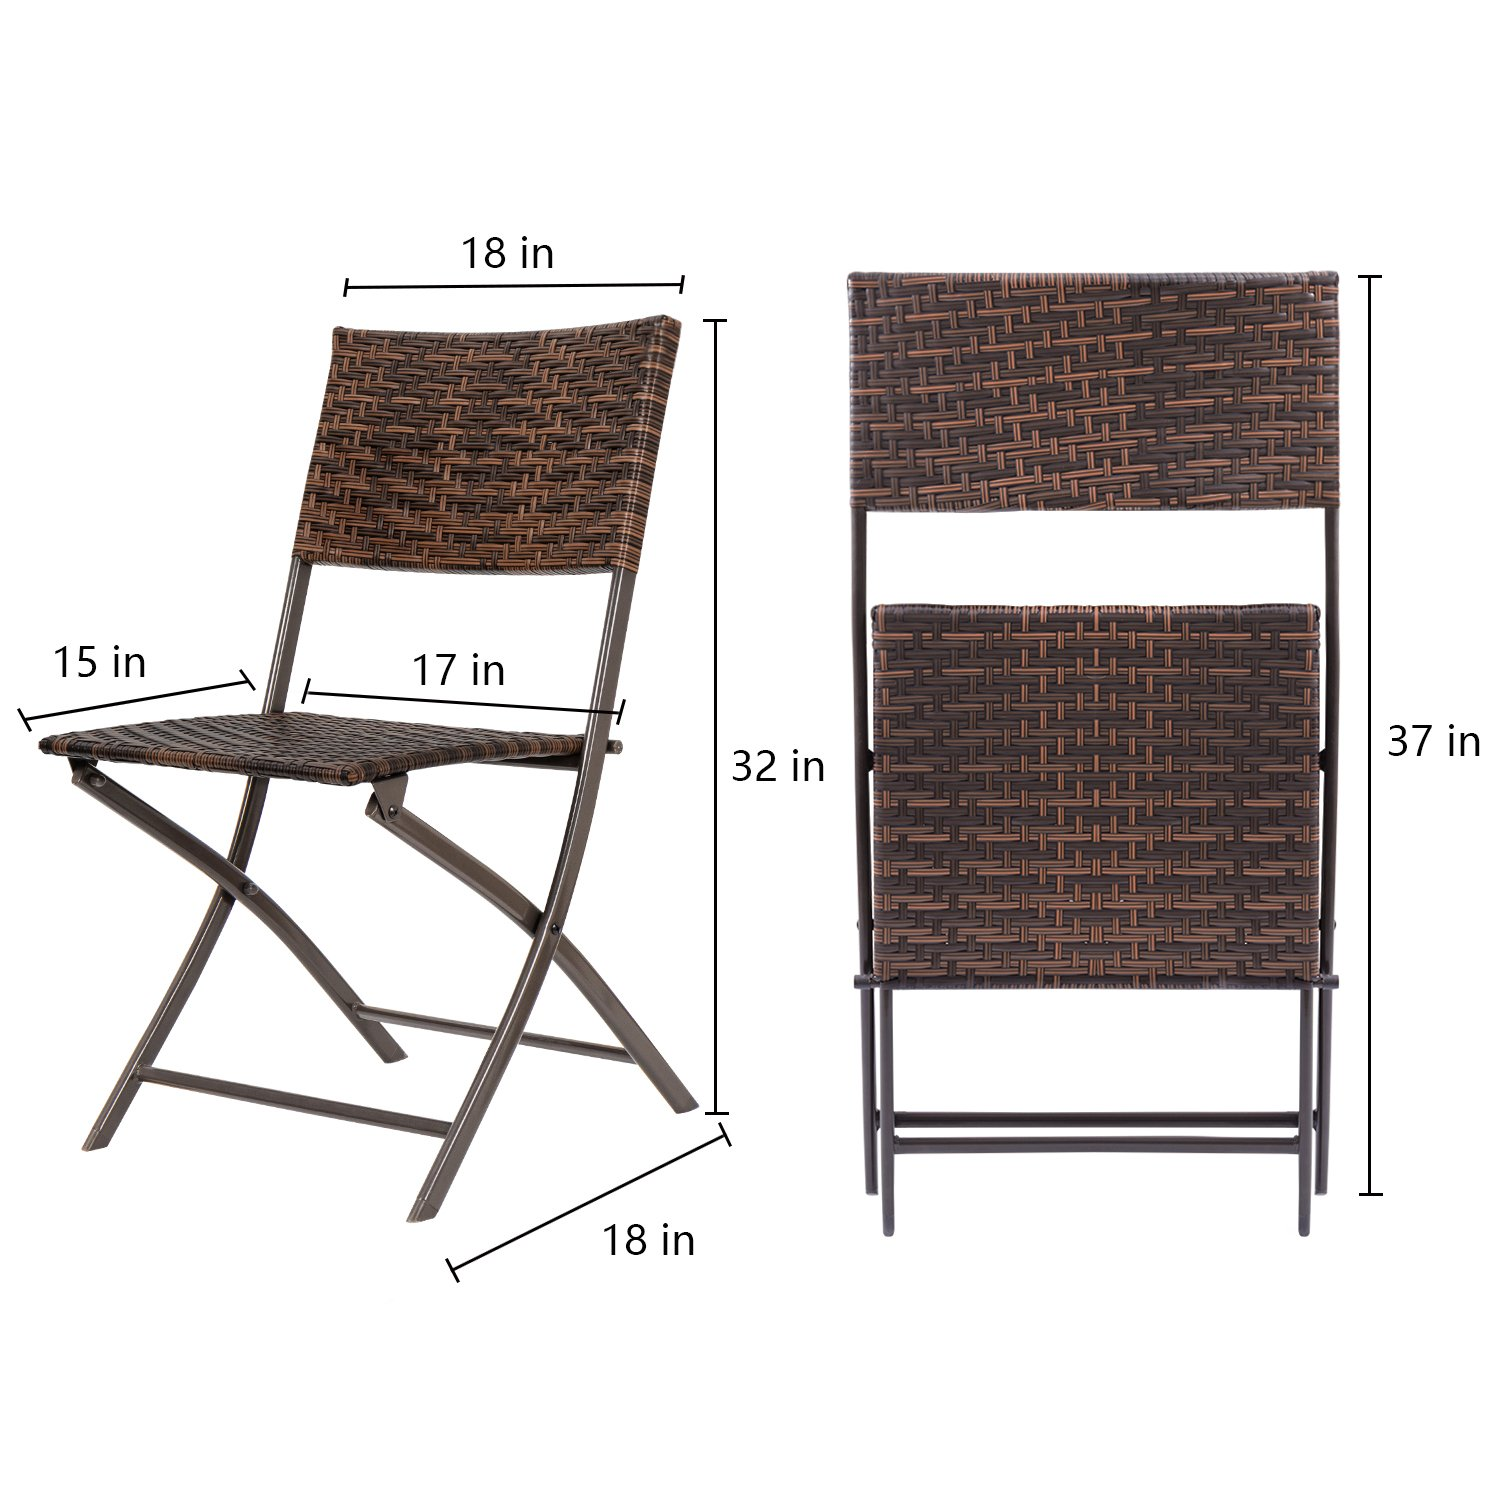 Flamaker Folding Patio Chairs PE Wicker Rattan Chair 4 Pieces Patio Furniture Set by Flamaker (Image #5)